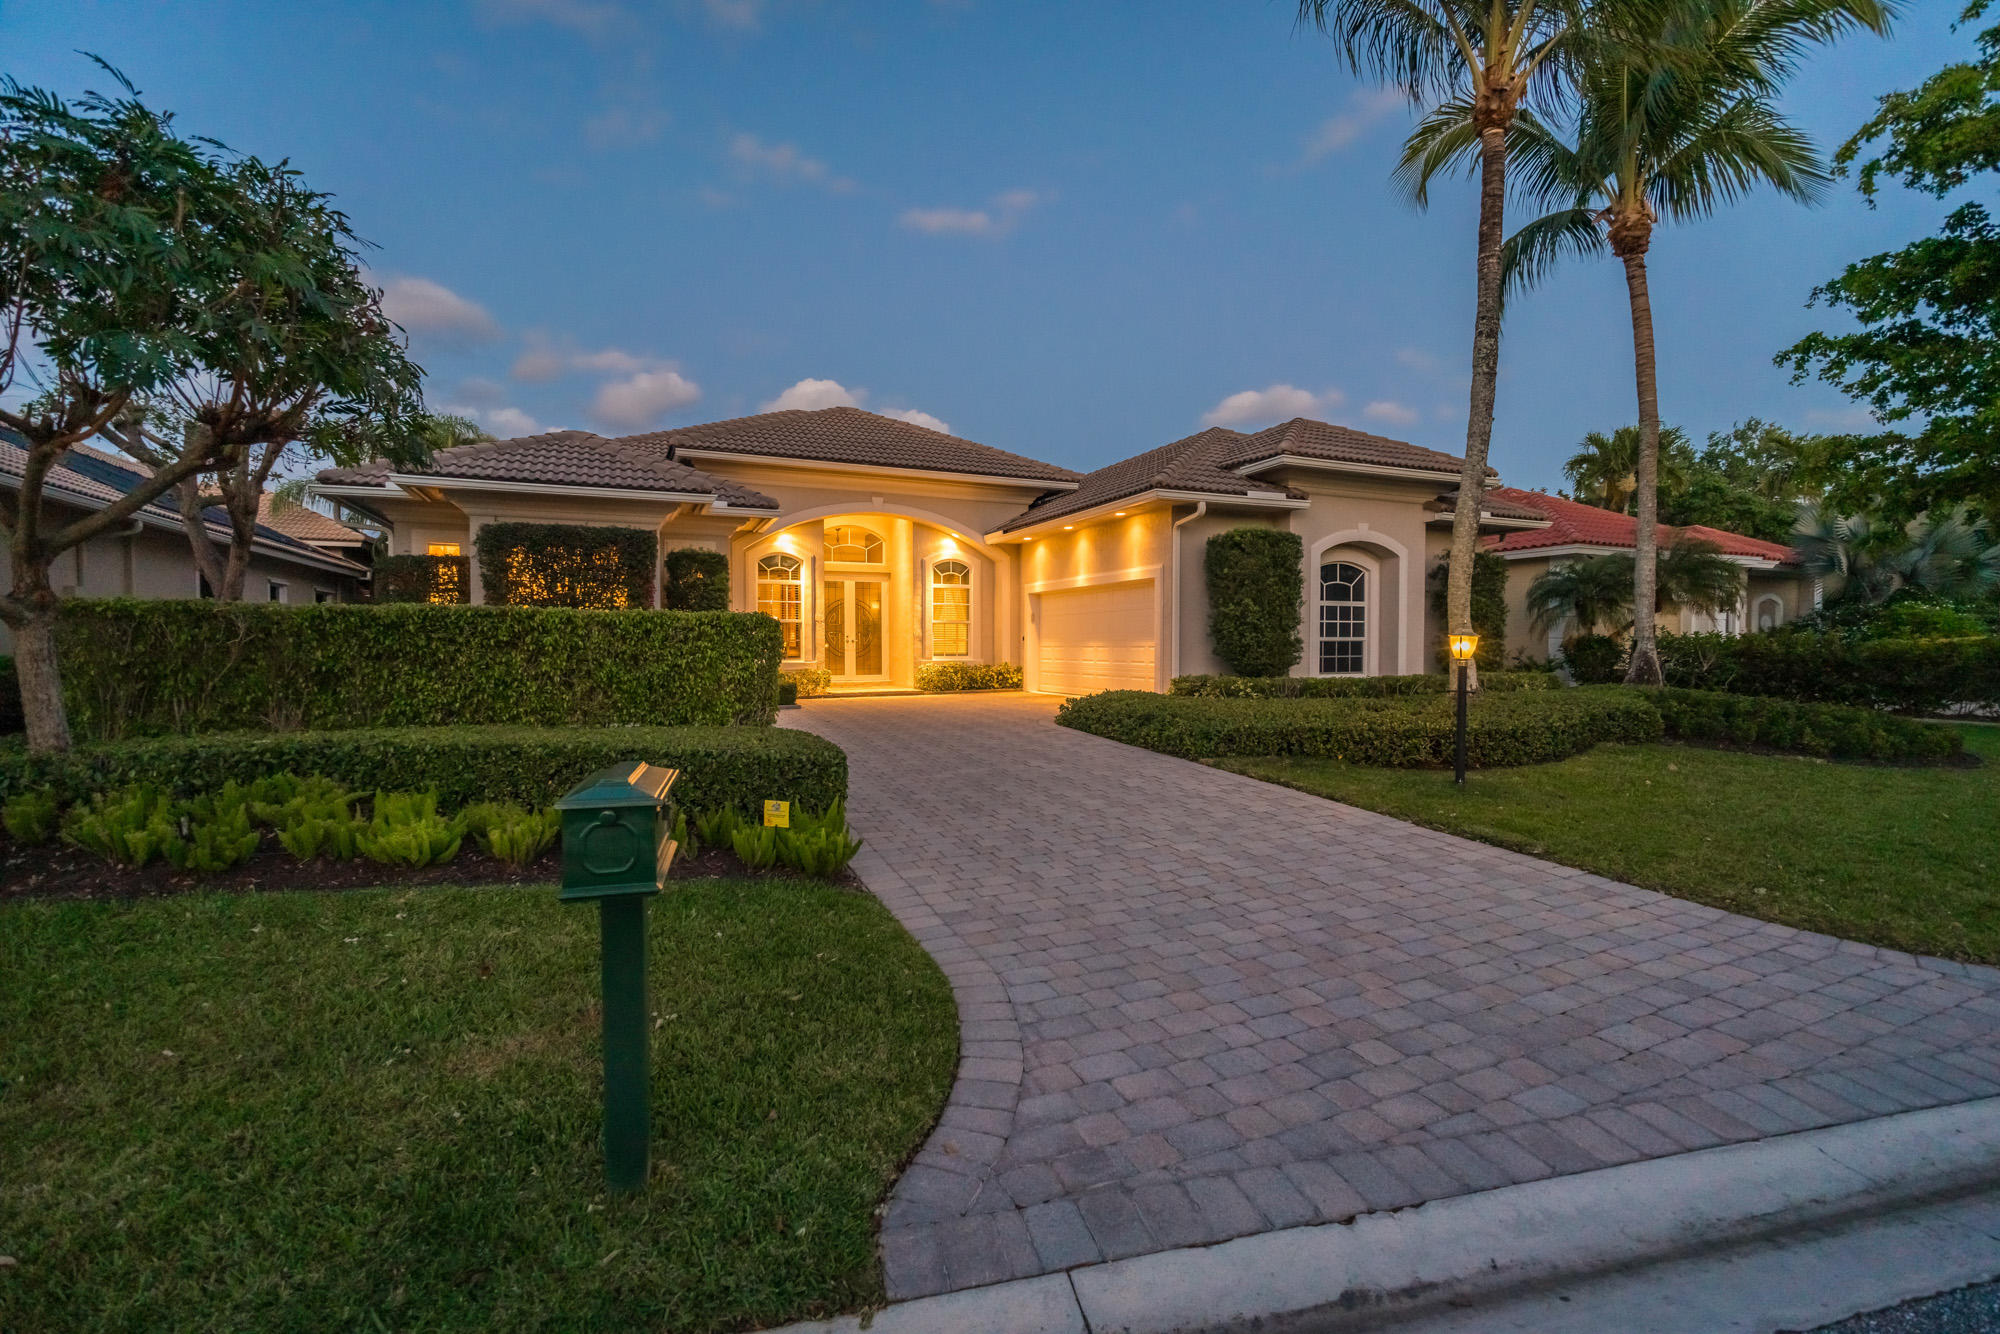 79 Cayman Place, Palm Beach Gardens, Florida 33418, 4 Bedrooms Bedrooms, ,3 BathroomsBathrooms,A,Single family,Cayman,RX-10514841